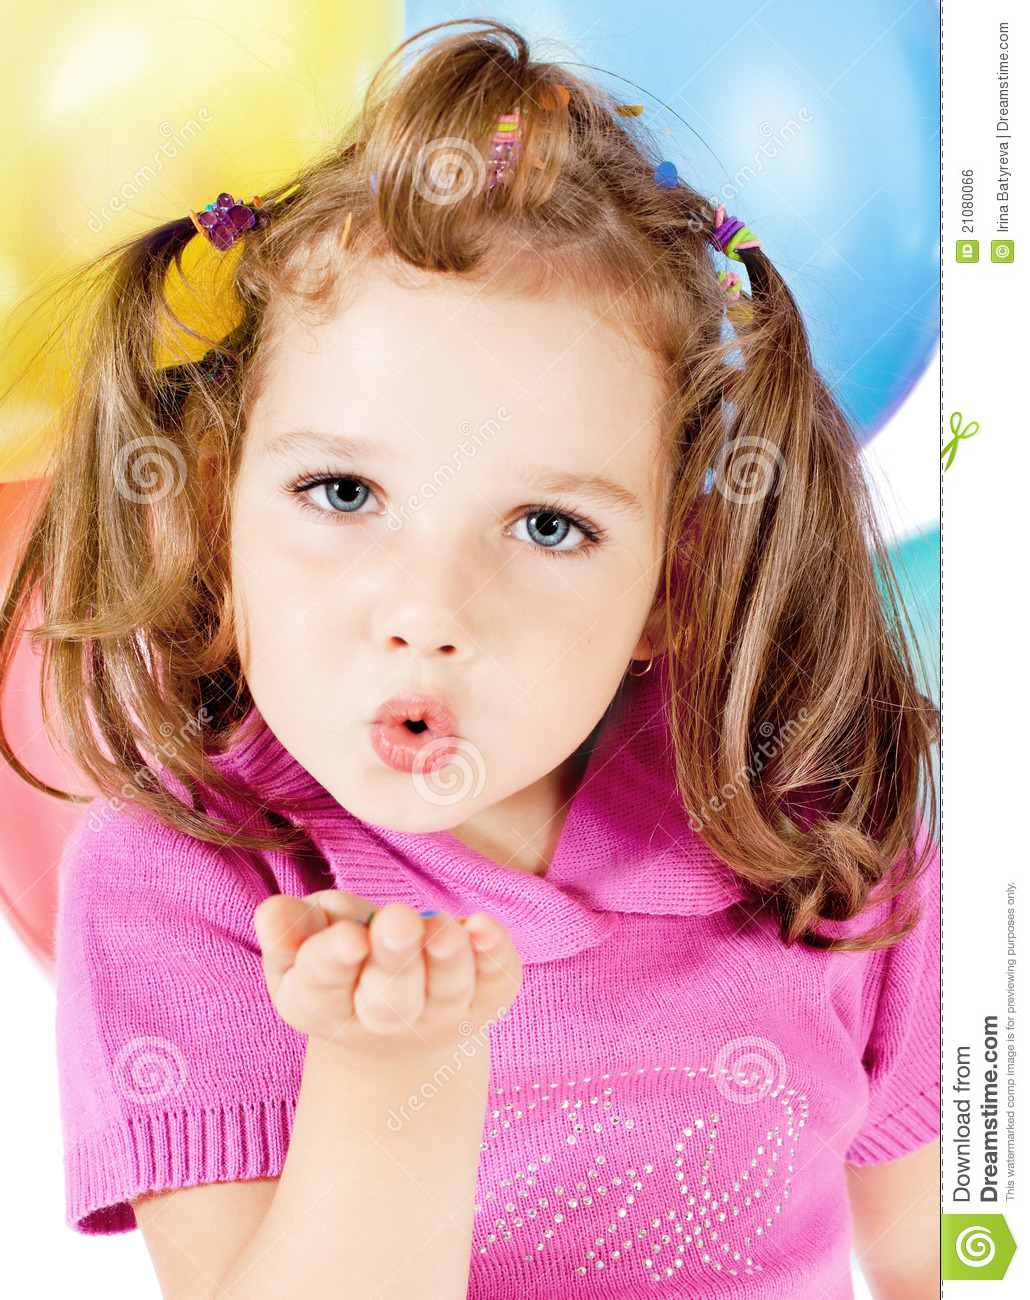 Little Girl Sends Kiss Stock Photo. Image Of Attractive